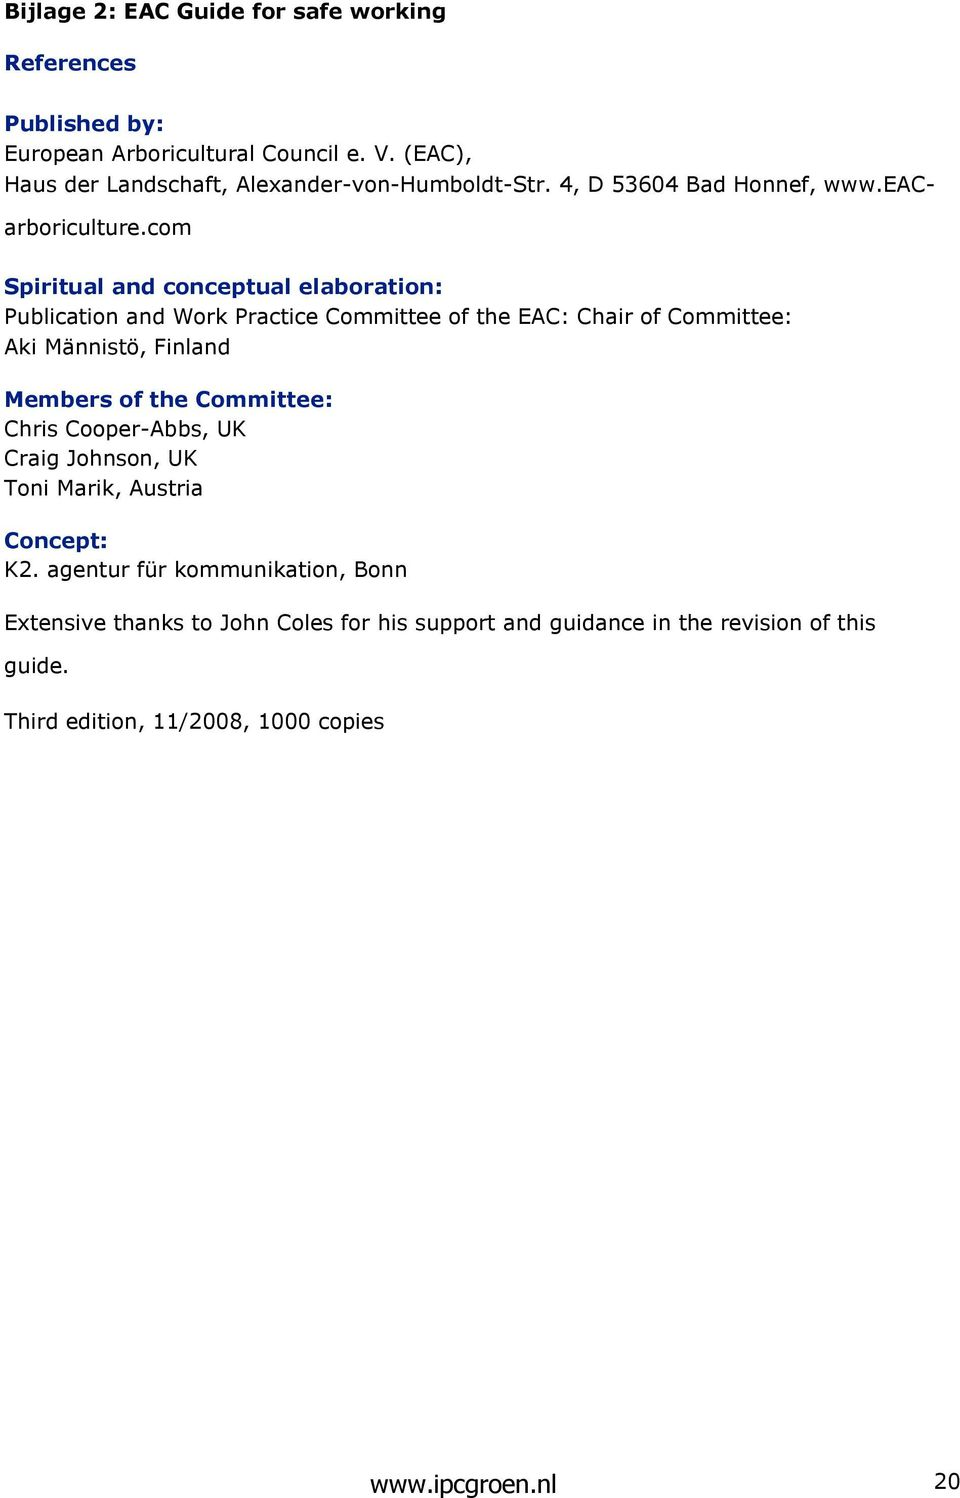 com Spiritual and conceptual elaboration: Publication and Work Practice Committee of the EAC: Chair of Committee: Aki Männistö, Finland Members of the